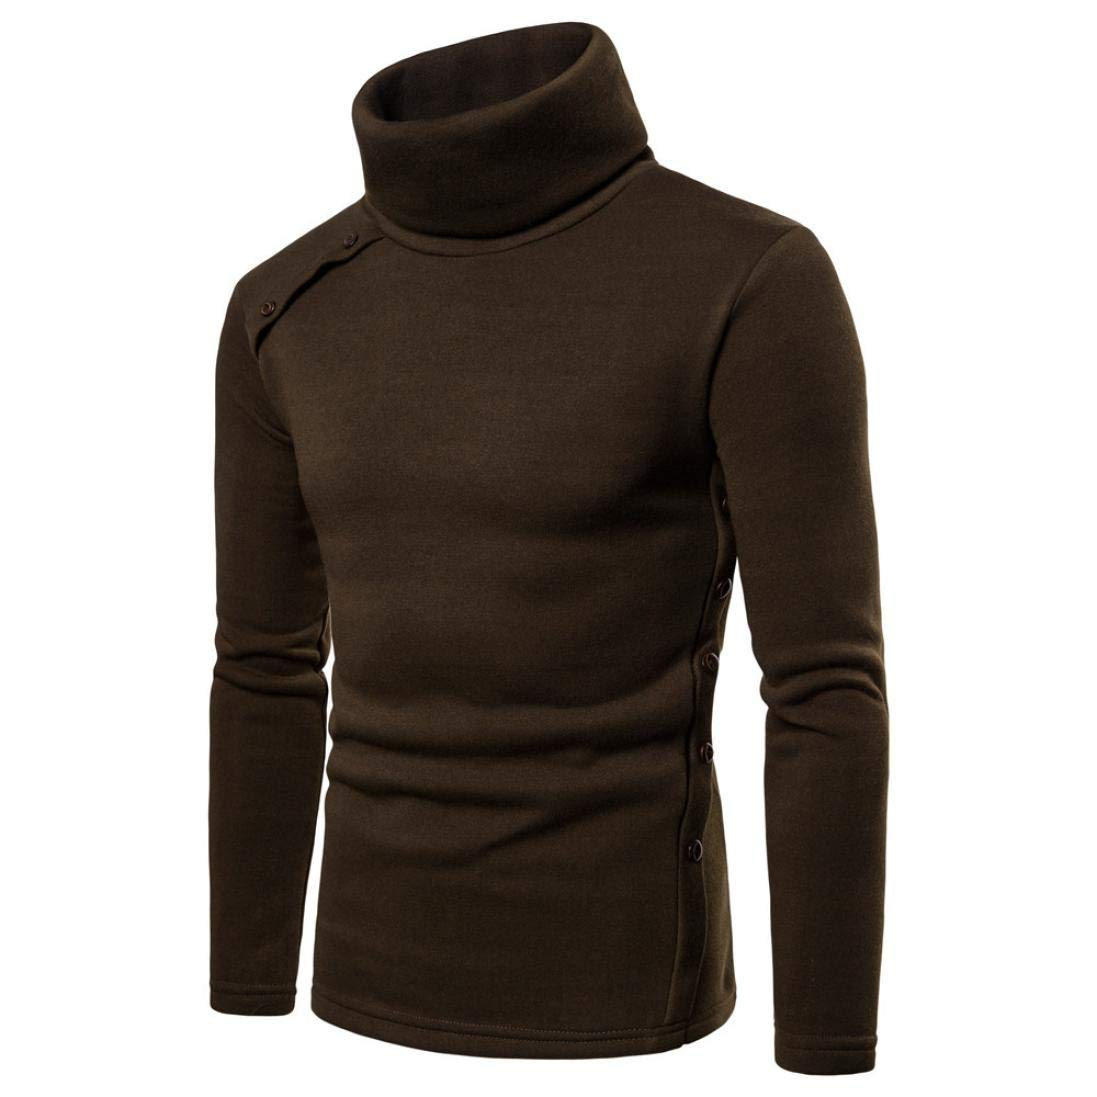 kaifongfu Autumn Winter Men's High Collar Solid Color Button Decorative Pullover Sweater TopsGreenM